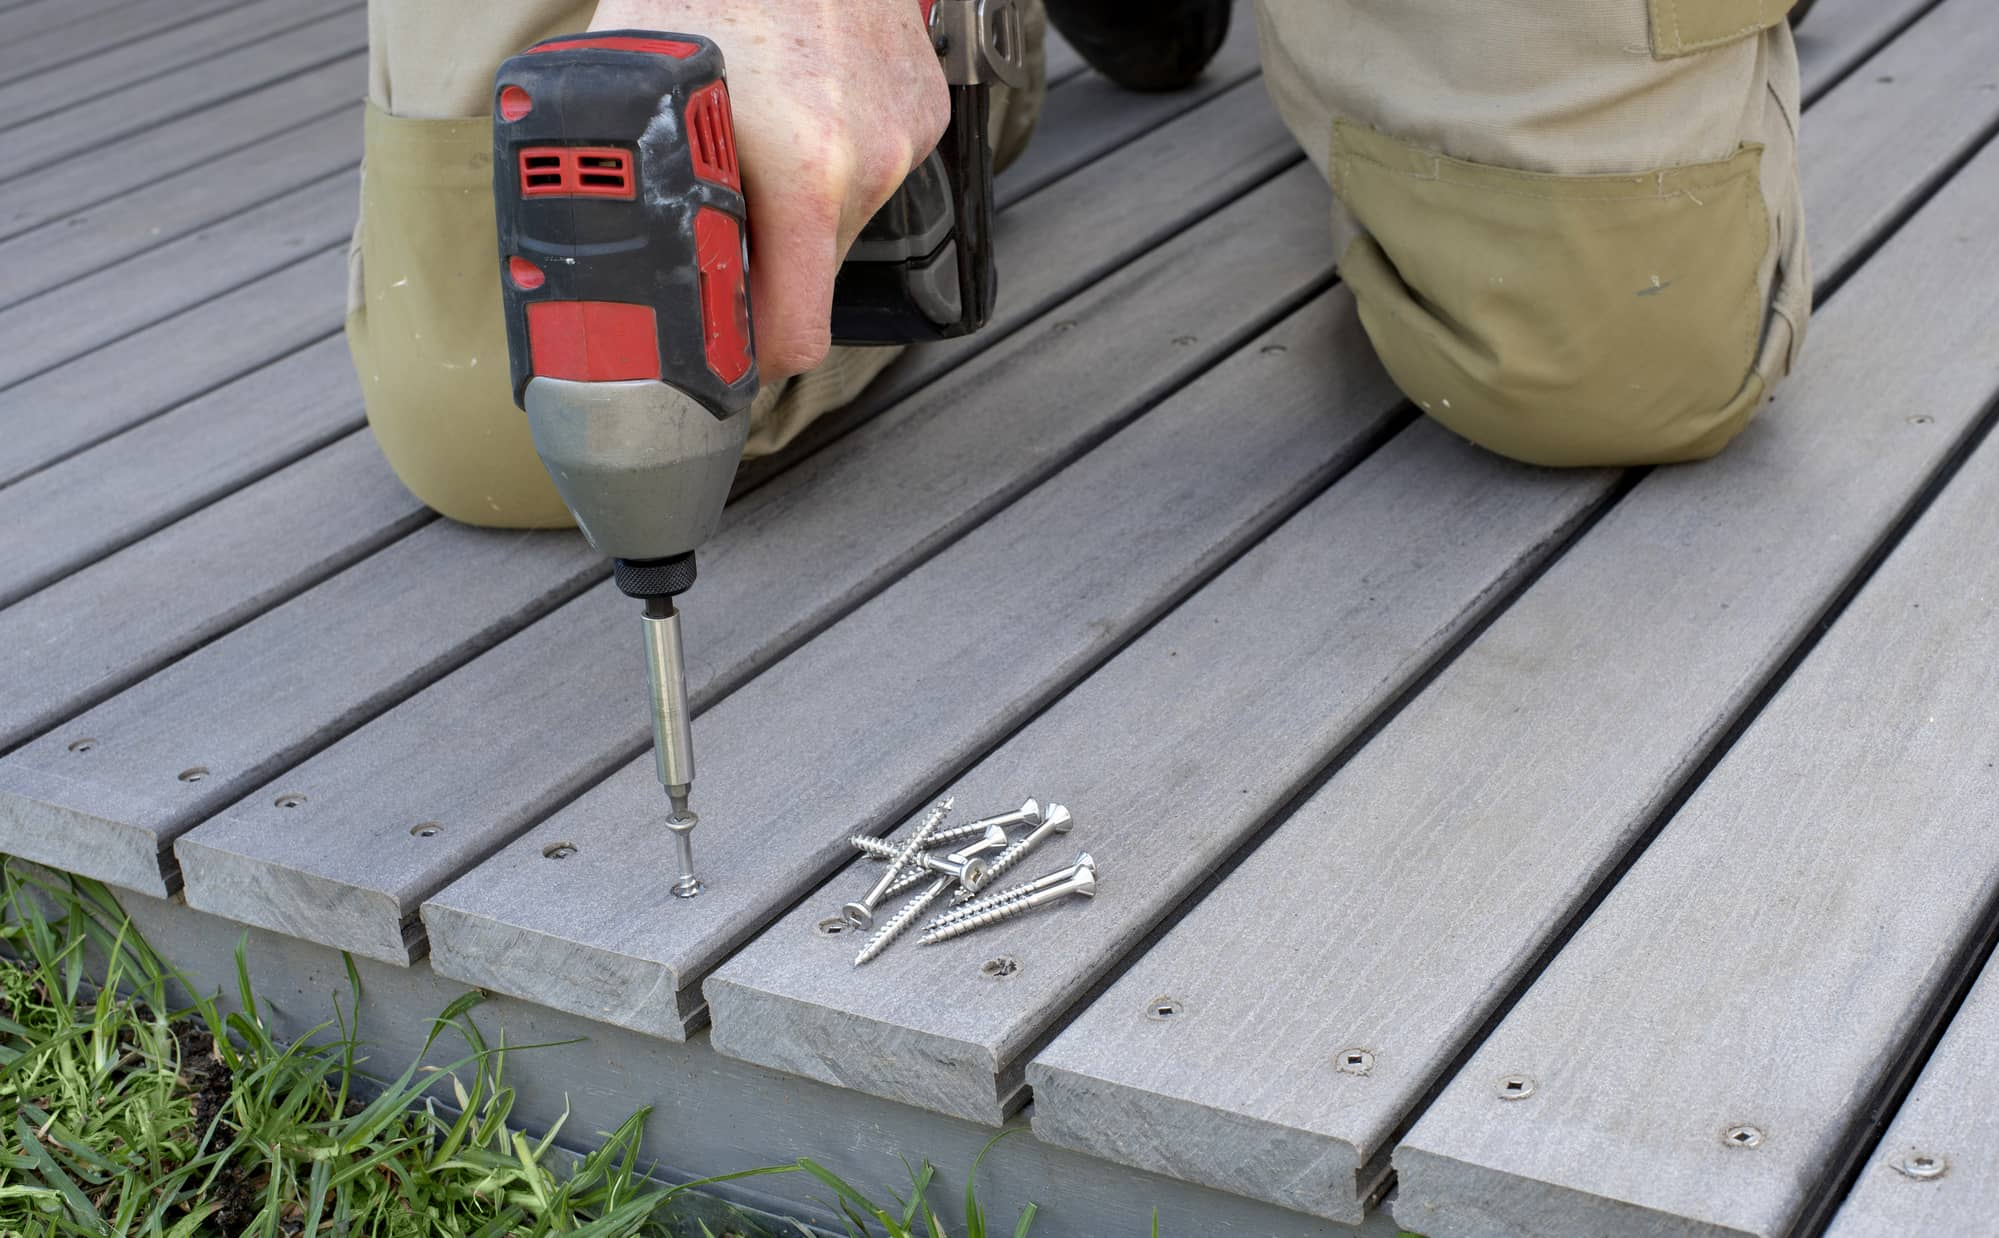 An image of a deck contractor screwing in boards for a new deck.